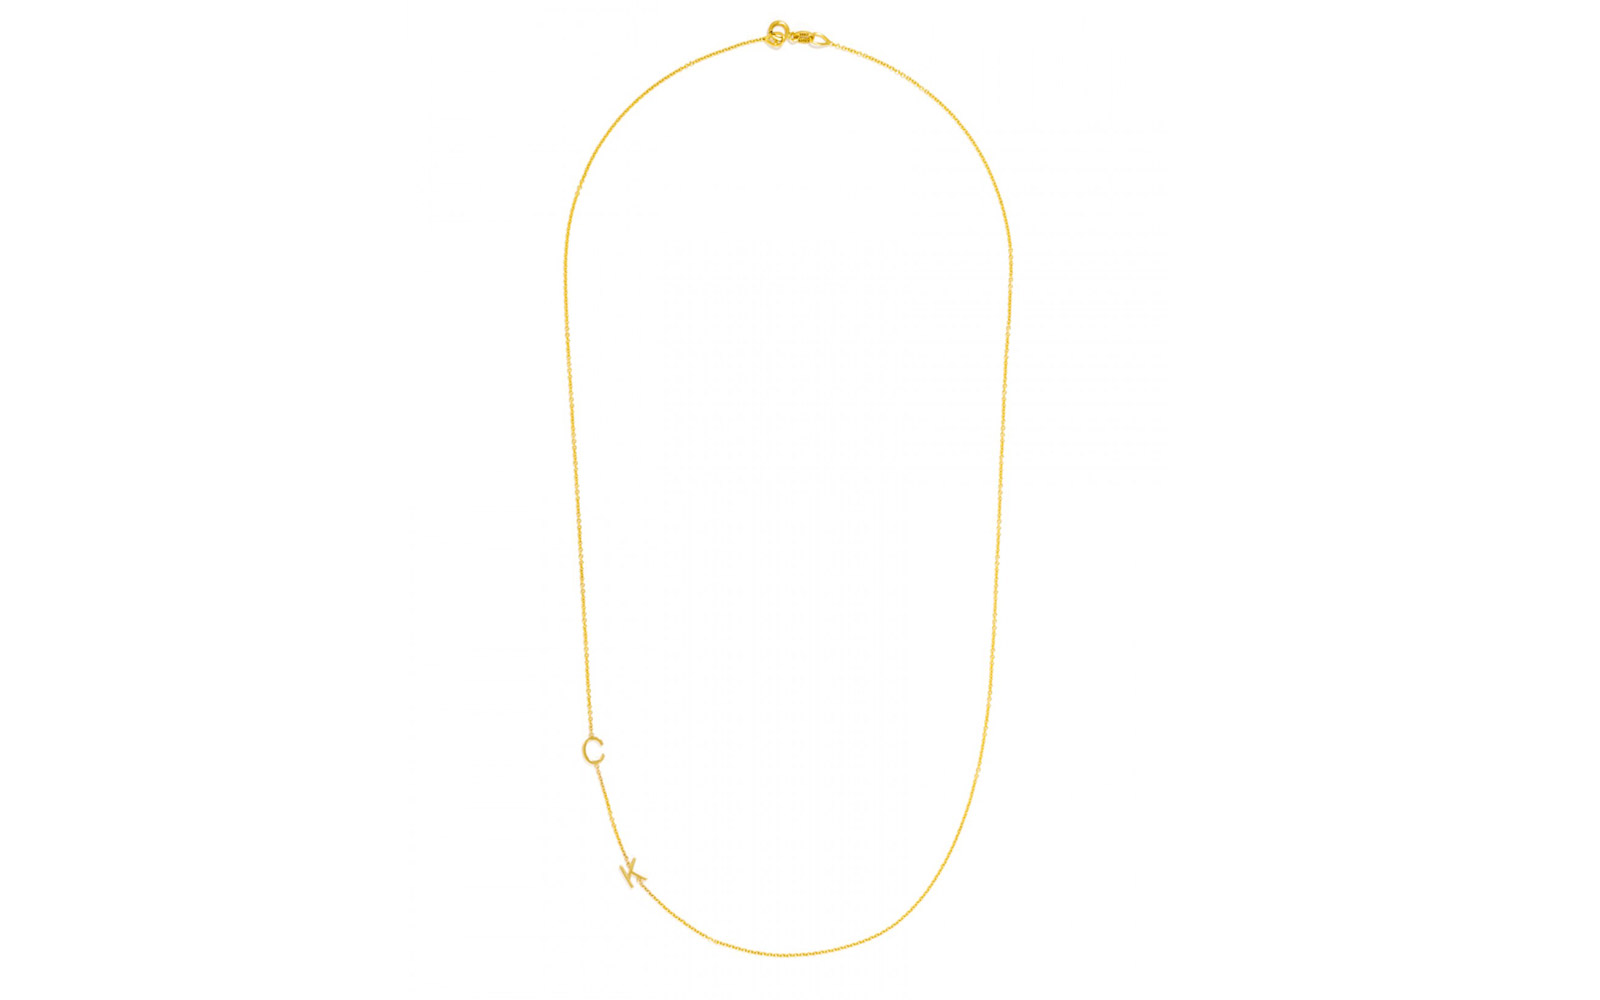 MAYA BRENNER INITIAL NECKLACE